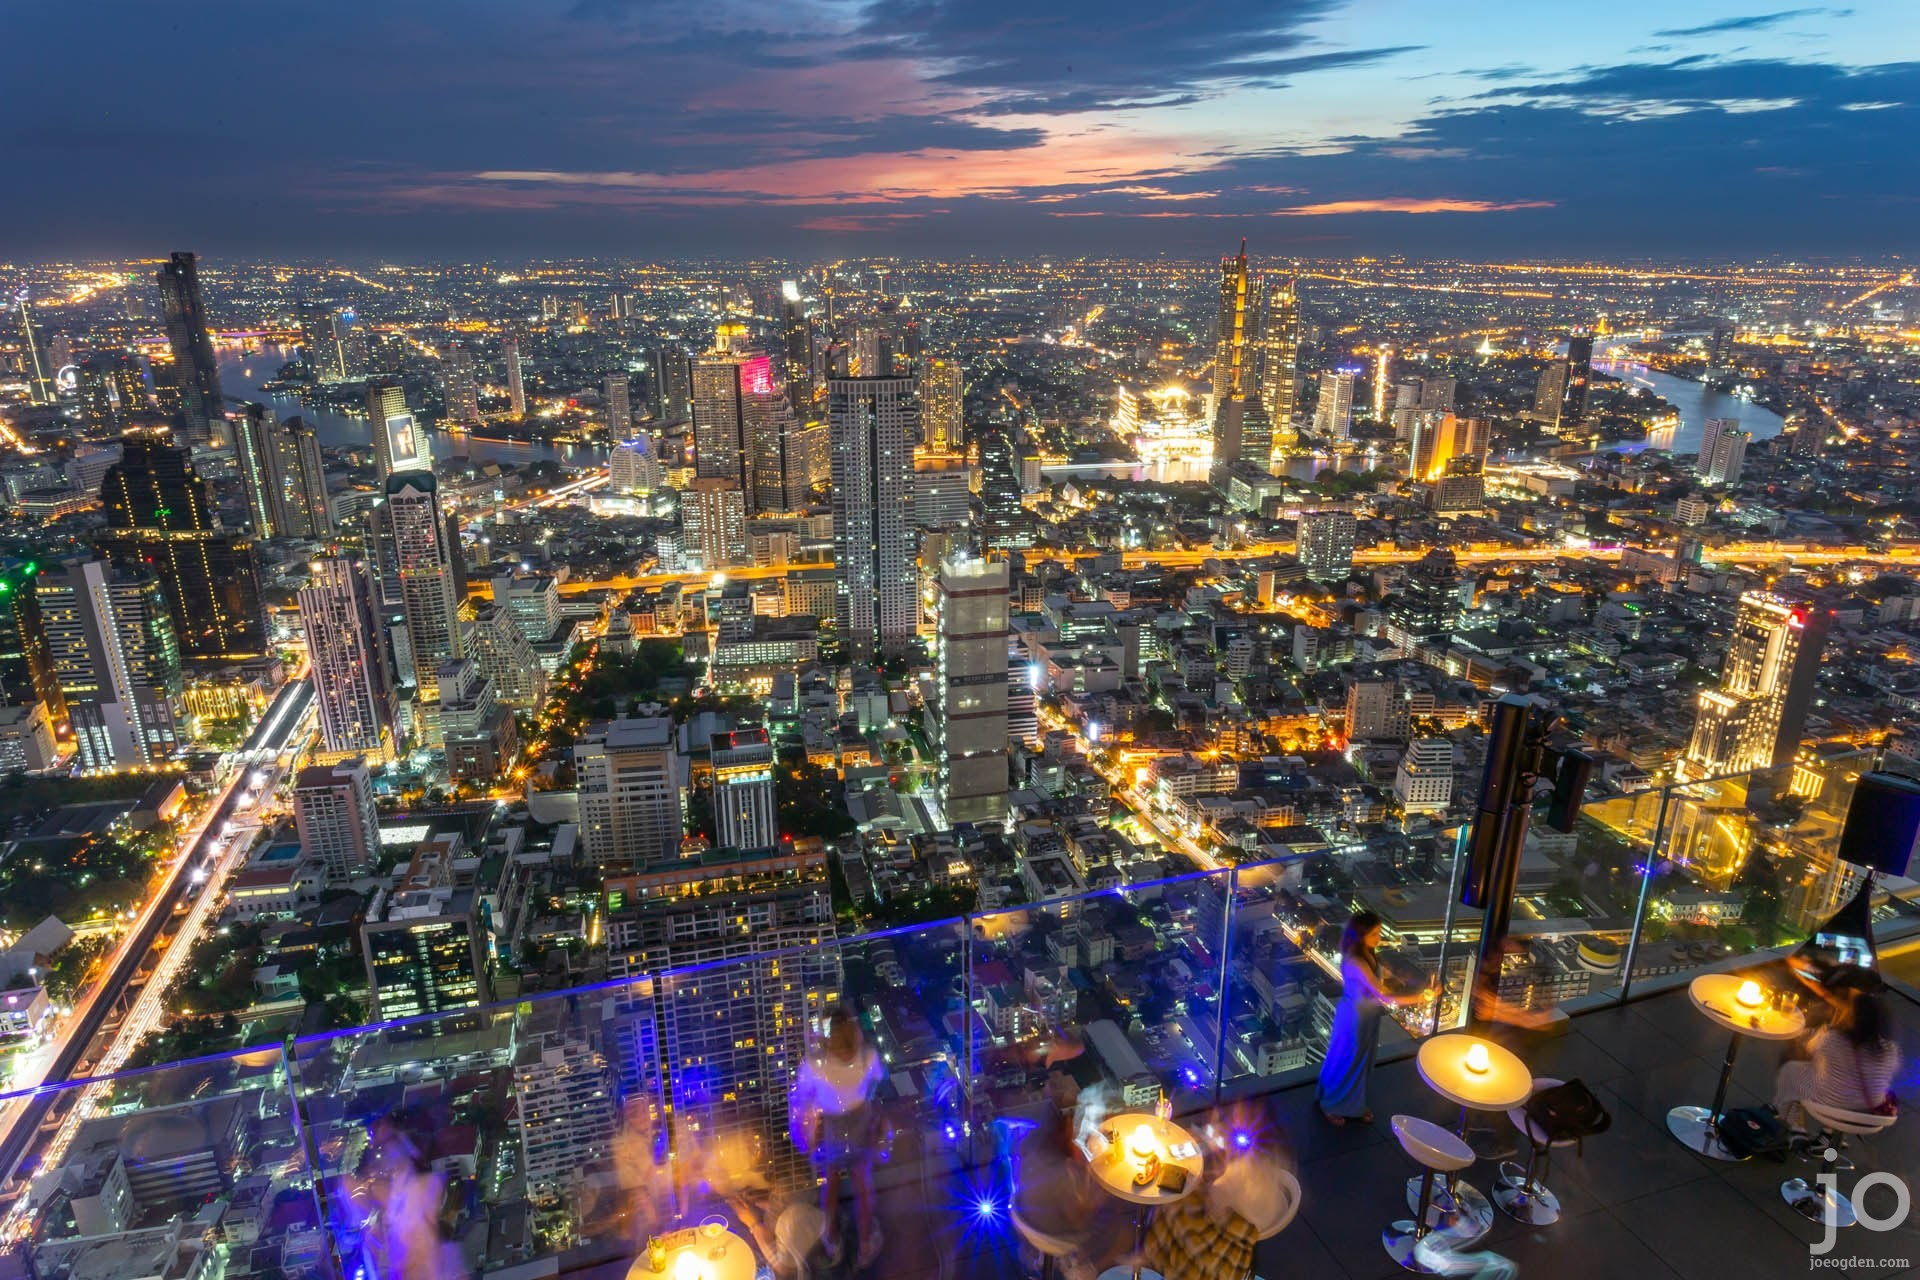 View from the King Power Maha Nakhon Tower, Bangkok, Thailand